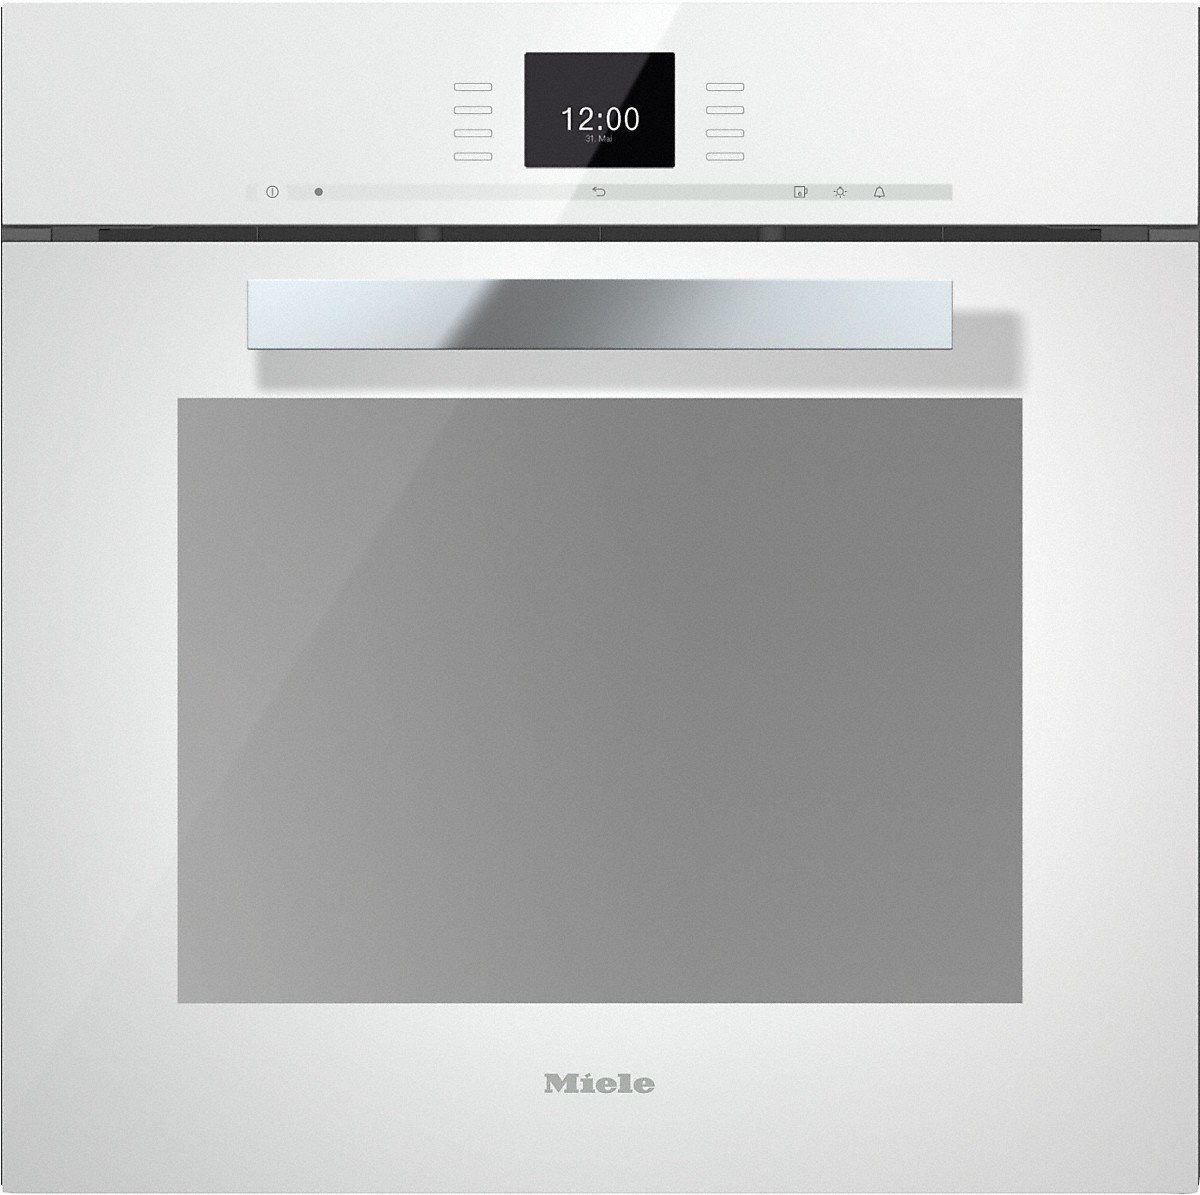 miele dgc 6660 stoomoven met volwaardige oven xxl. Black Bedroom Furniture Sets. Home Design Ideas